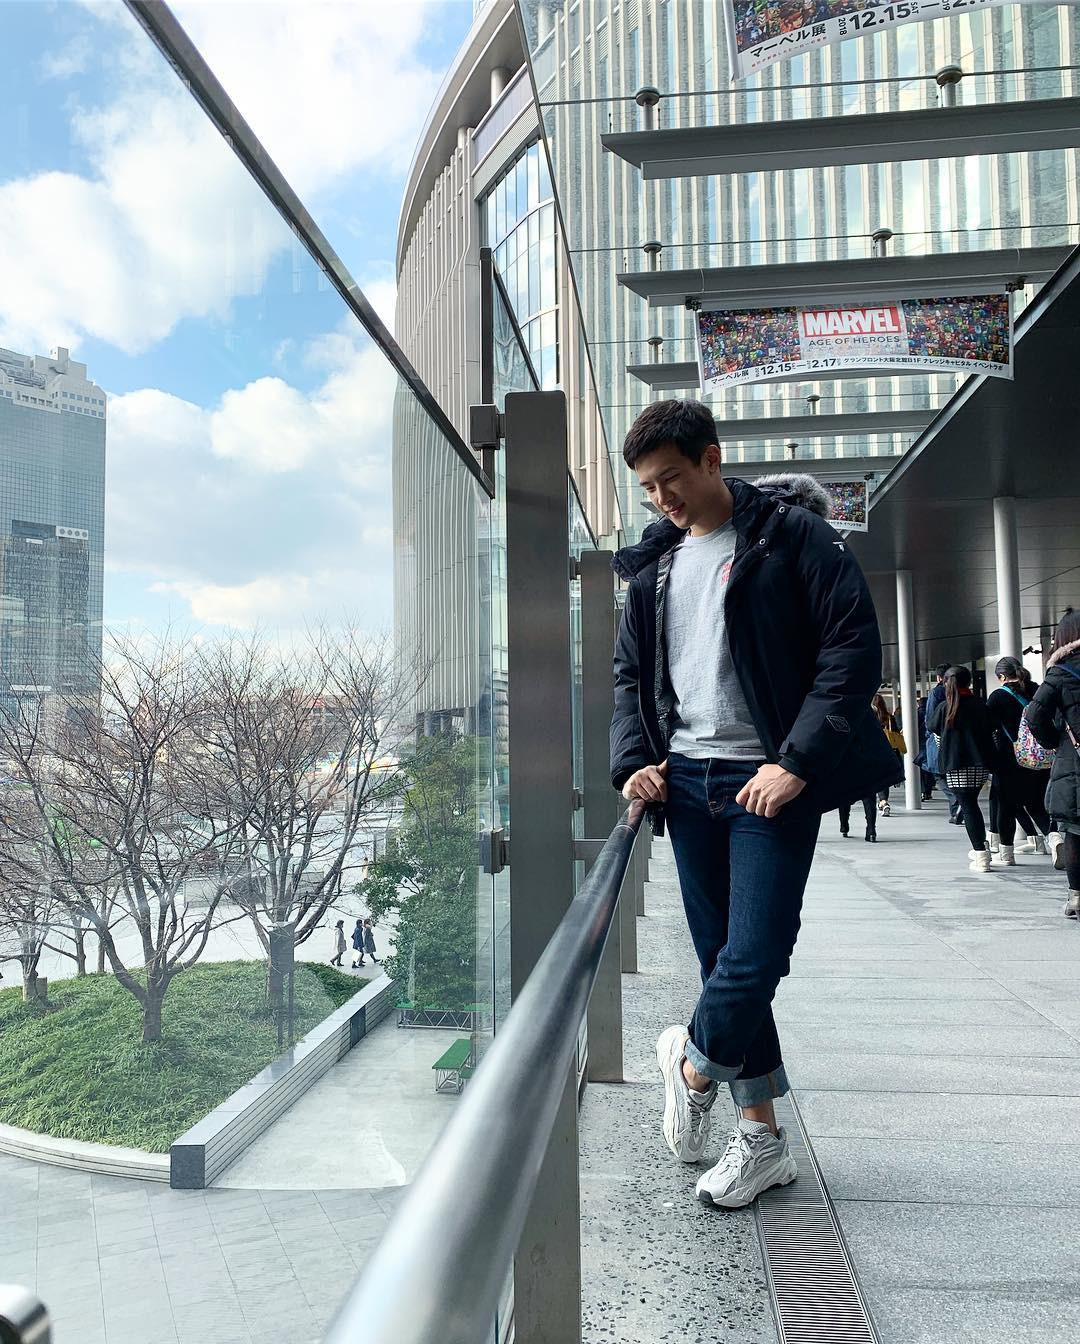 Thailand's best and most handsome hybrid men: Nadech, Mario are all but number 1 is amazing - Photo 21.